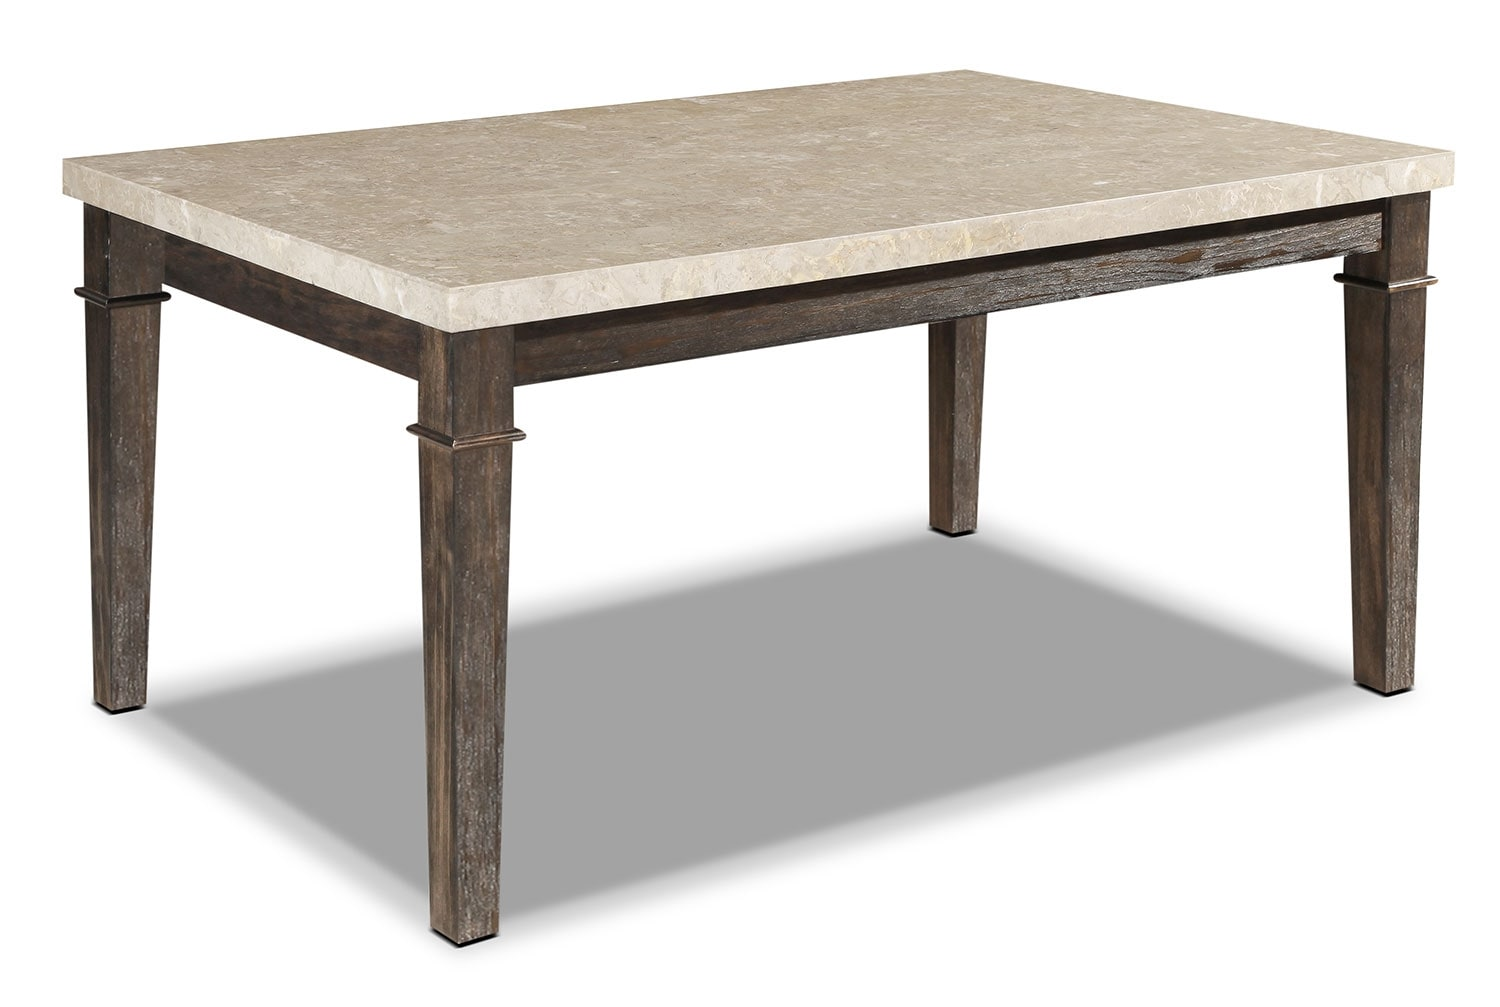 Aldo dining table the brick for Furniture dining table